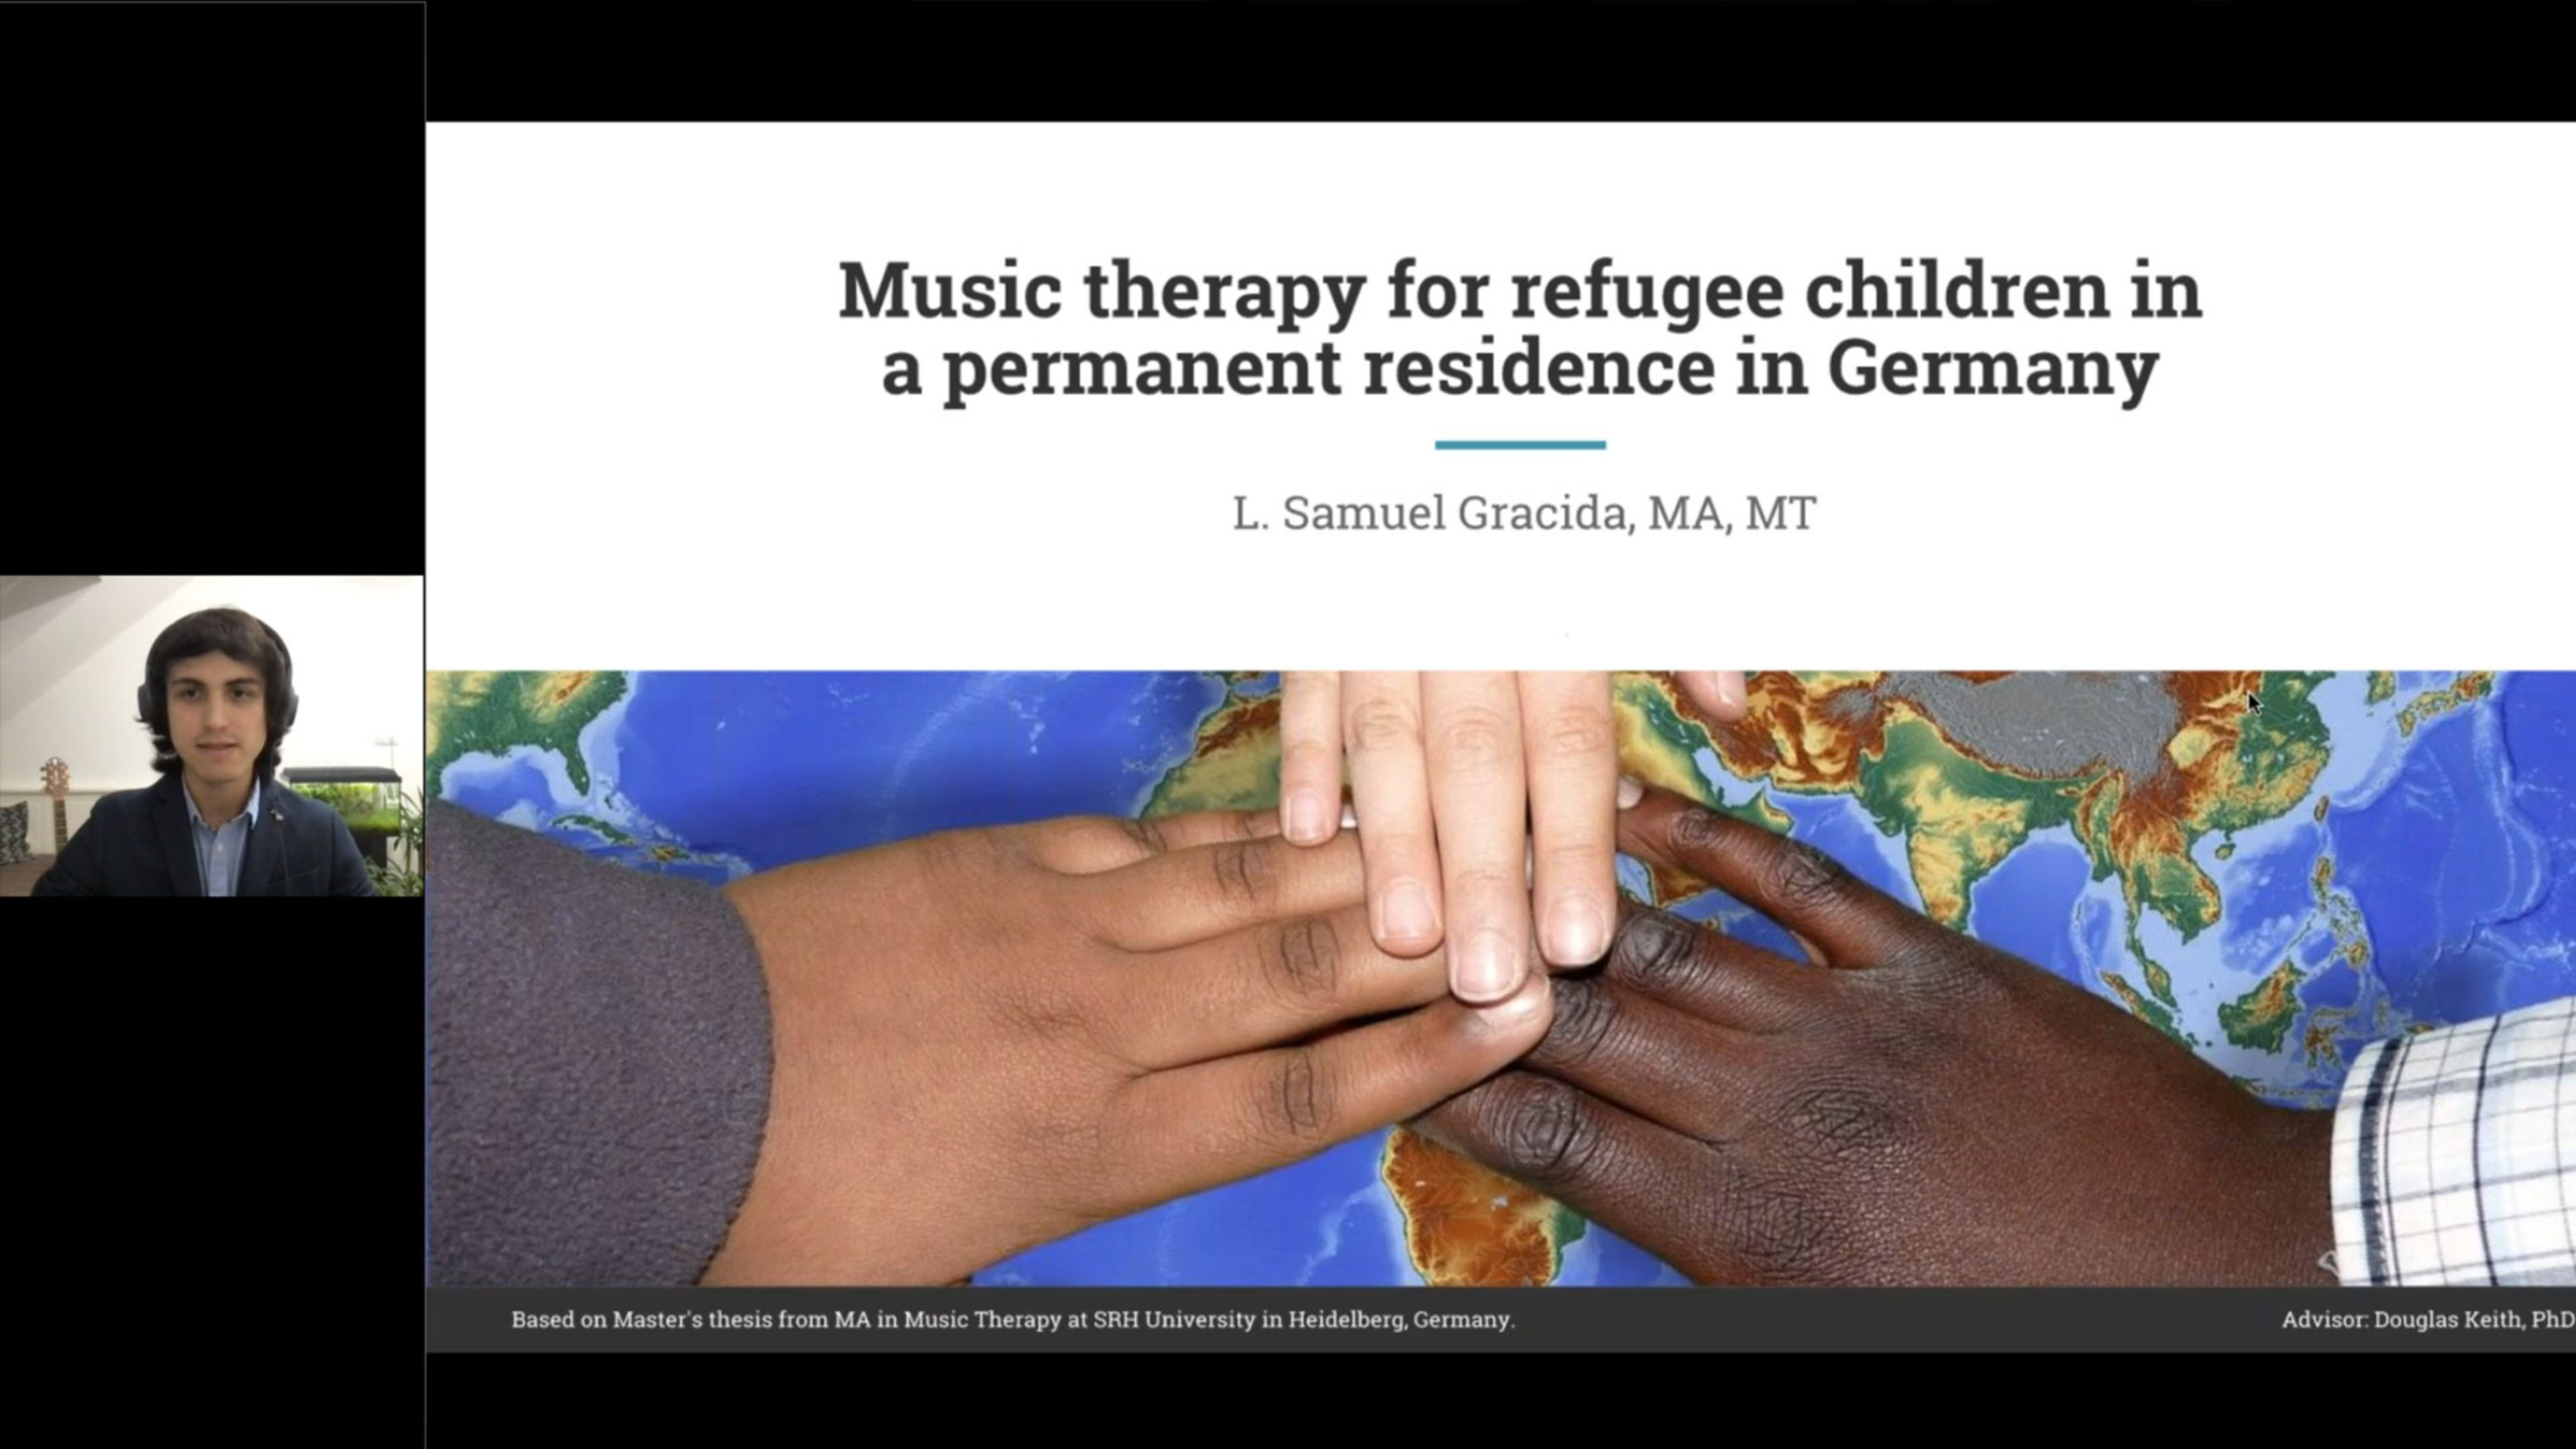 Creating a Music Therapy Program for Refugee Children in Germany